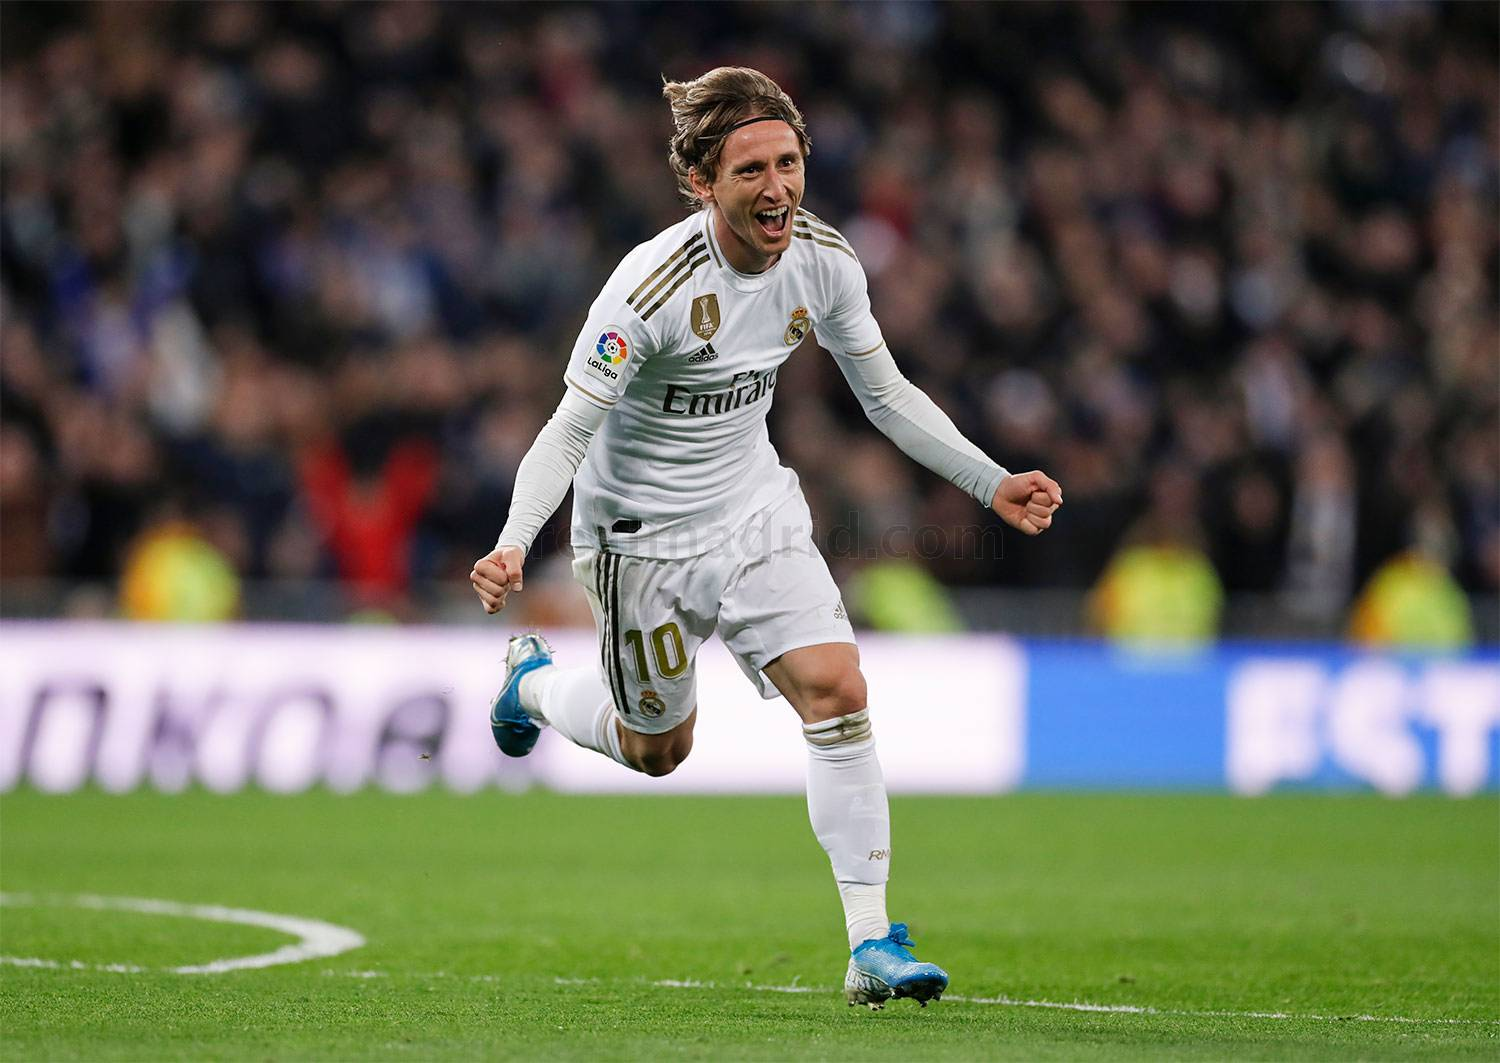 Real Madrid - Modric en el Real Madrid - 25-07-2020